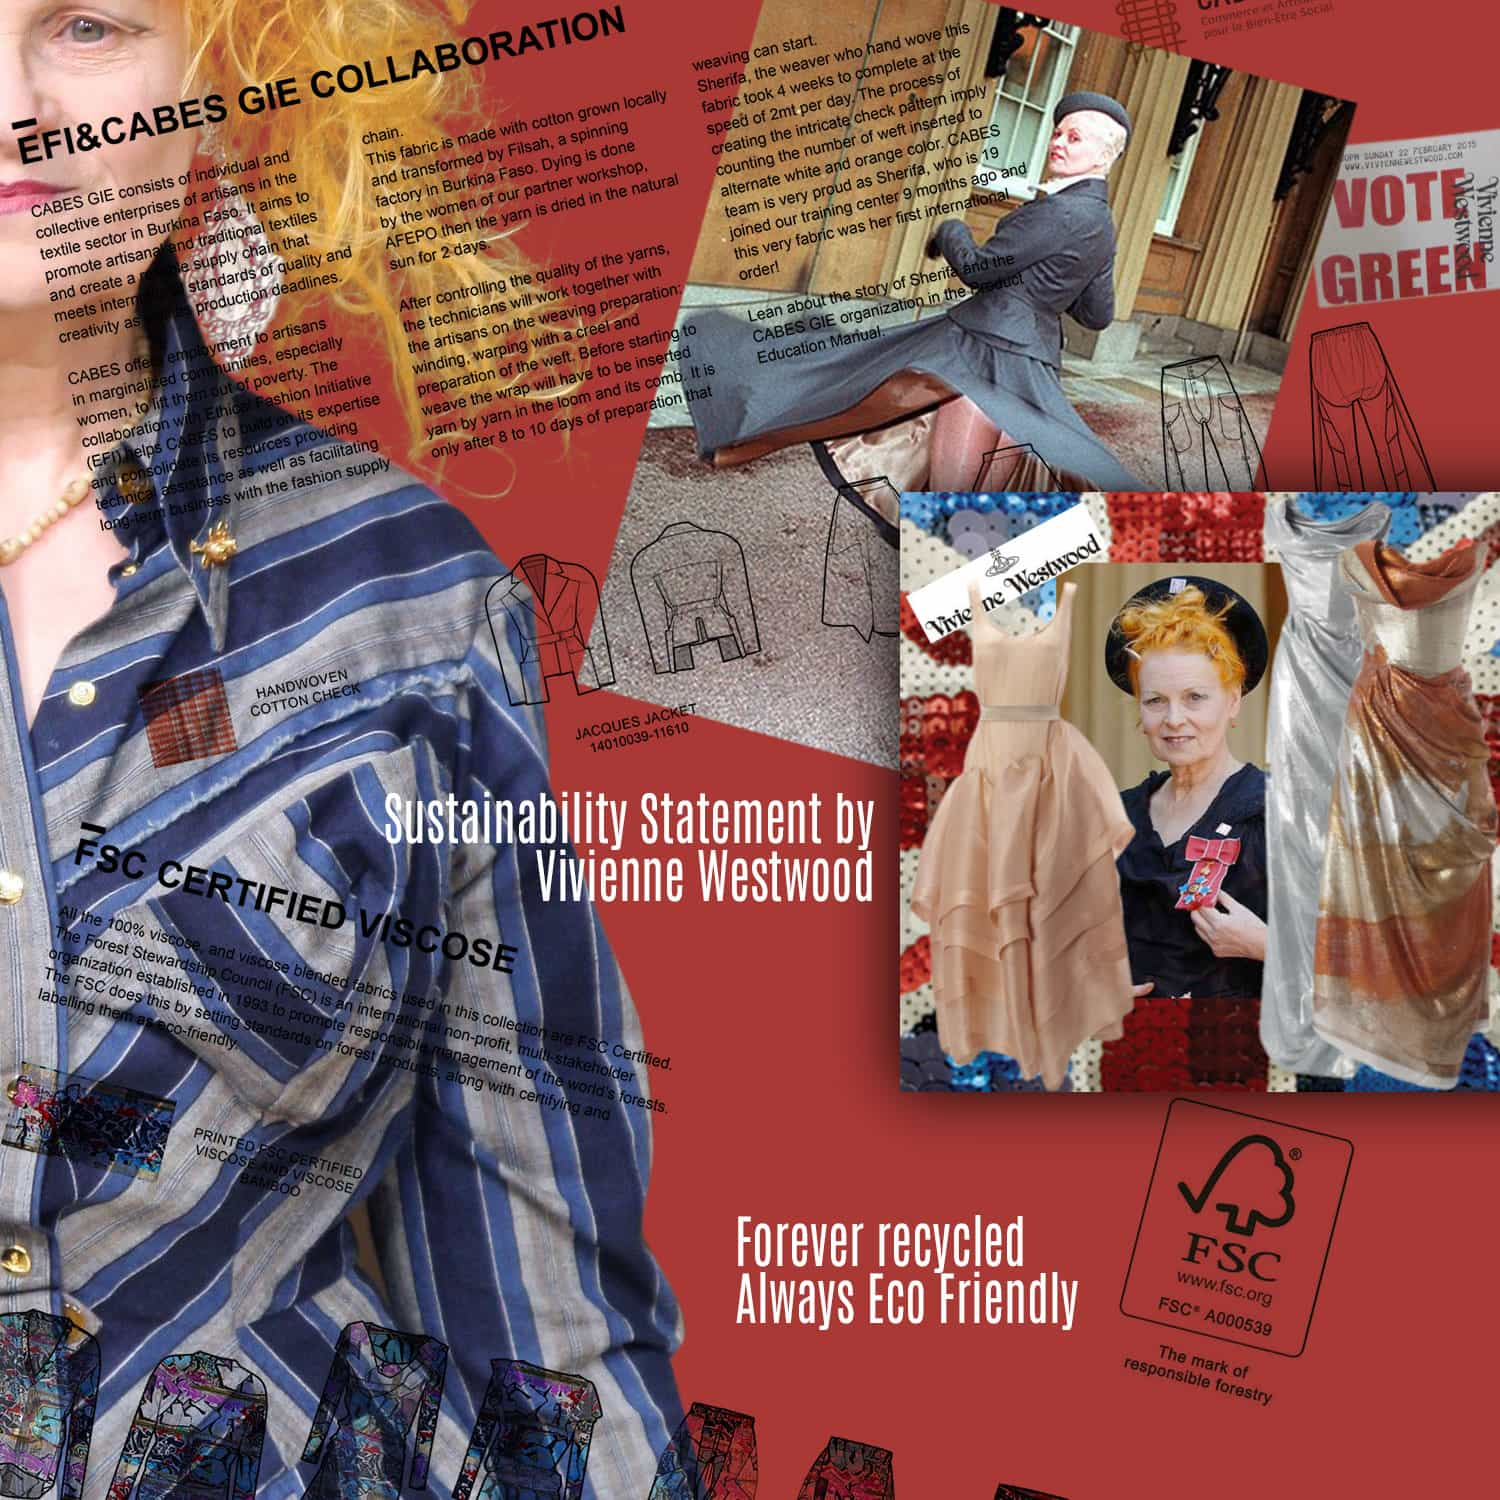 Sustainability Statement by Vivienne Westwood